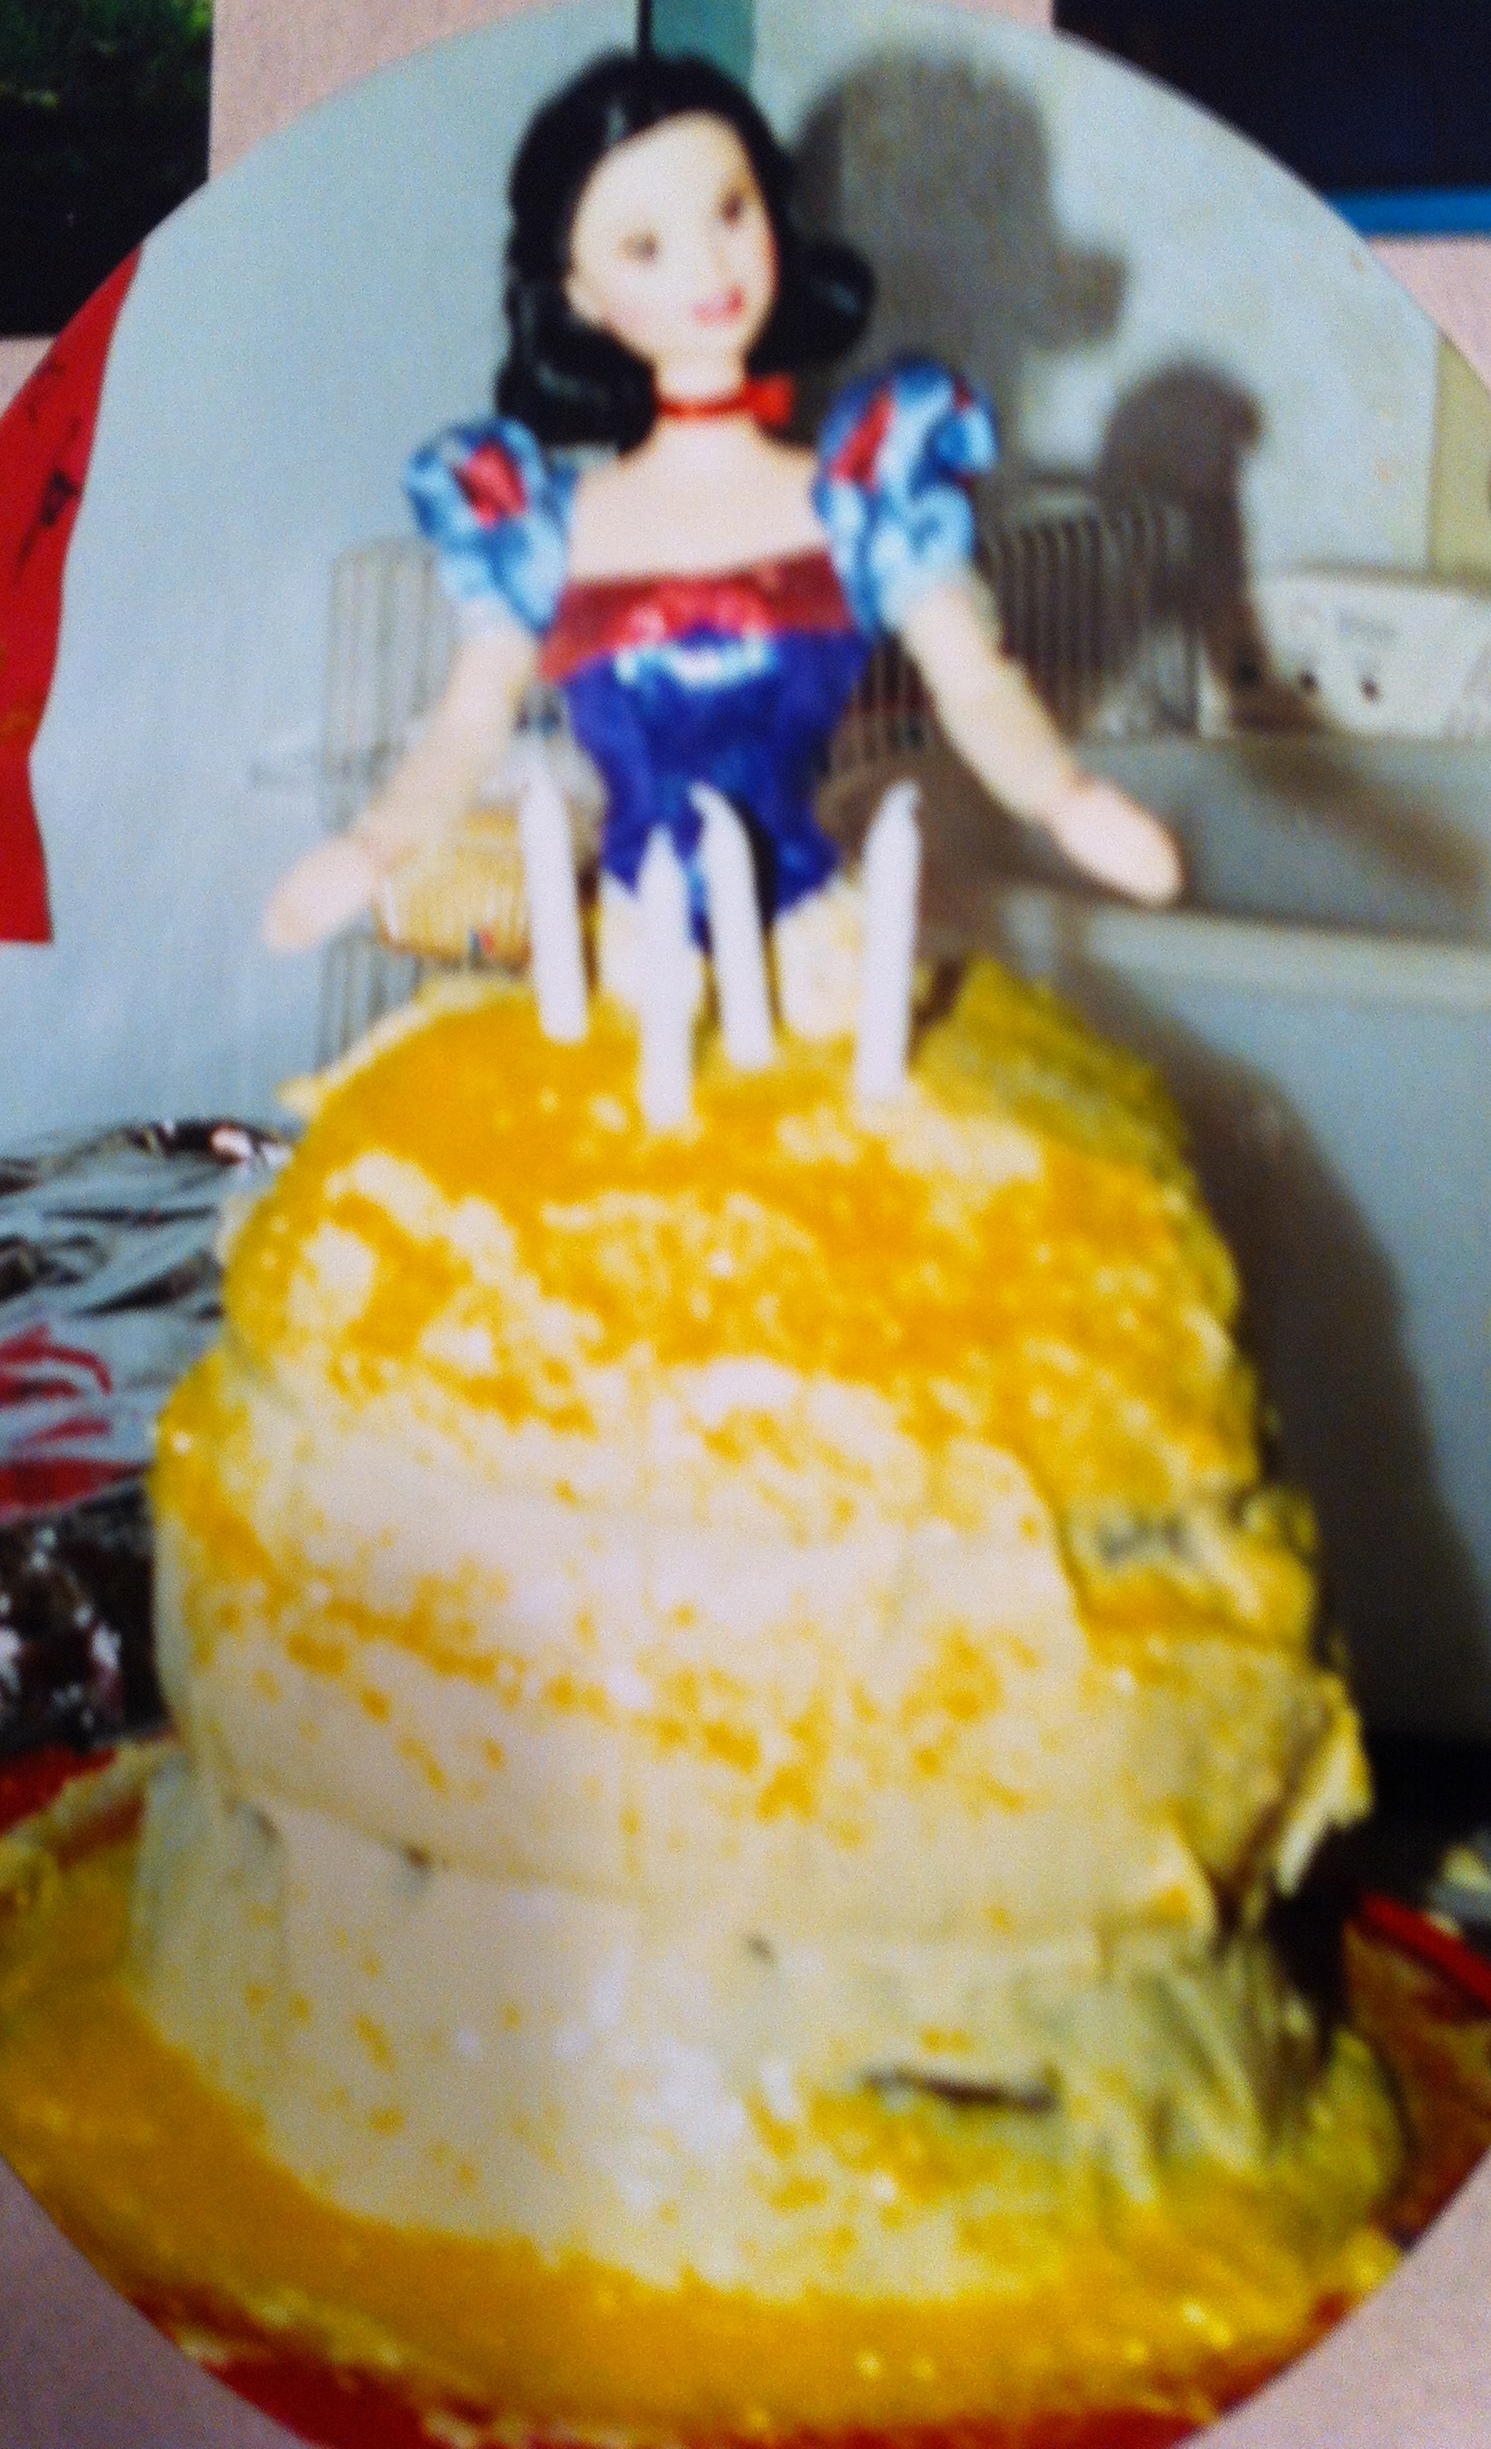 Birthday cake shaped like snow white